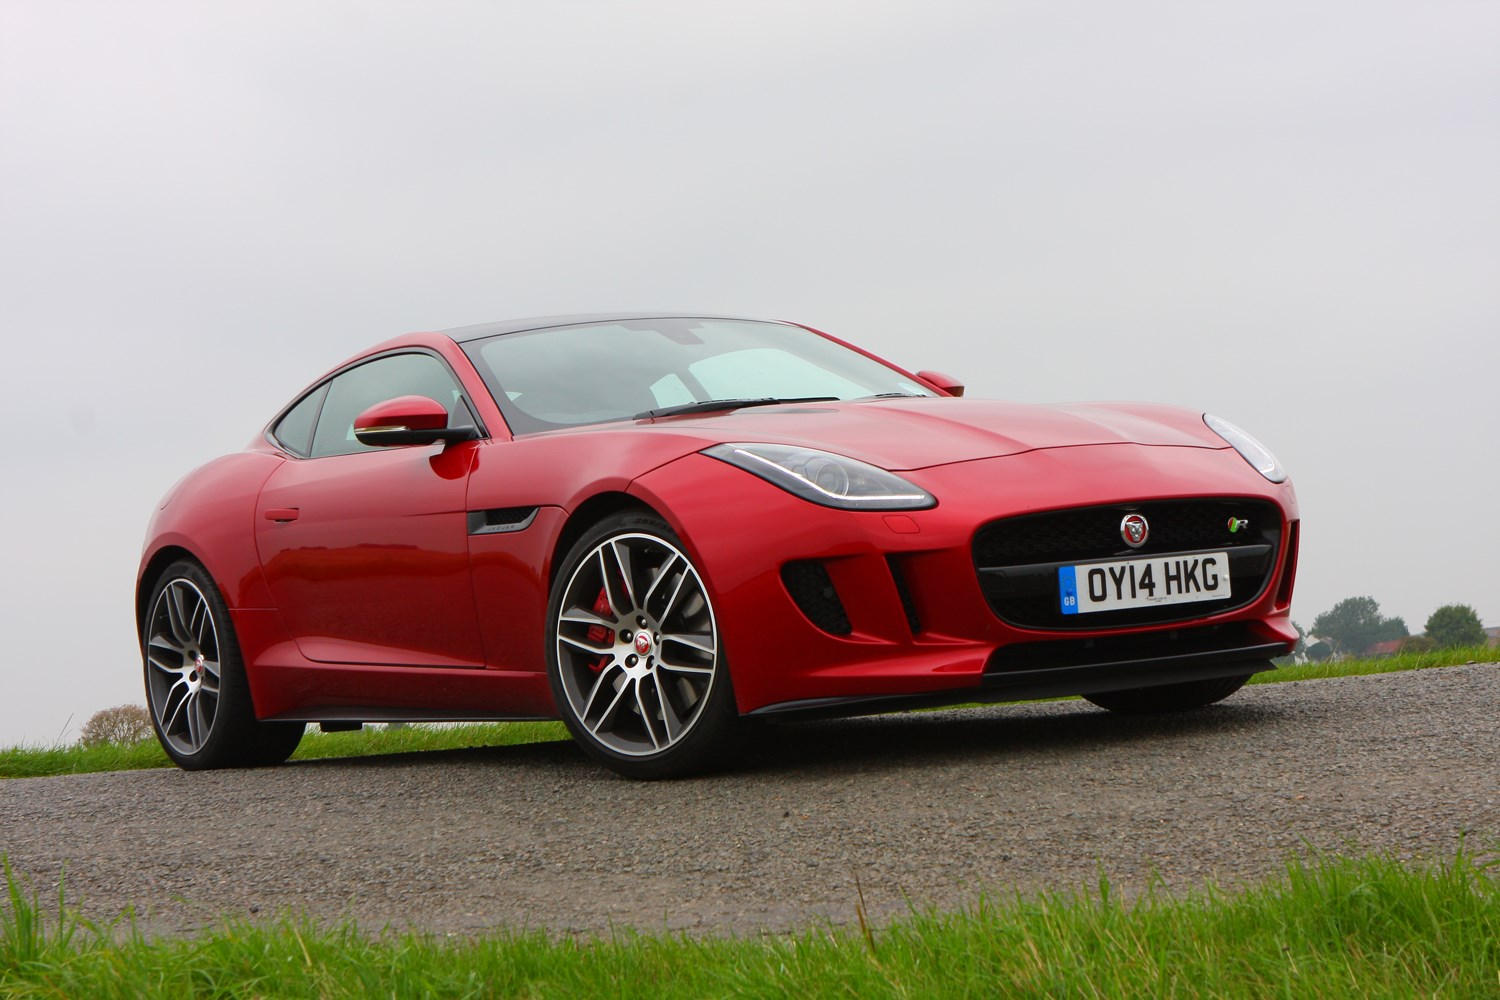 Jaguar f type r coupe 2014 photos parkers - Jaguar f type r coupe prix ...